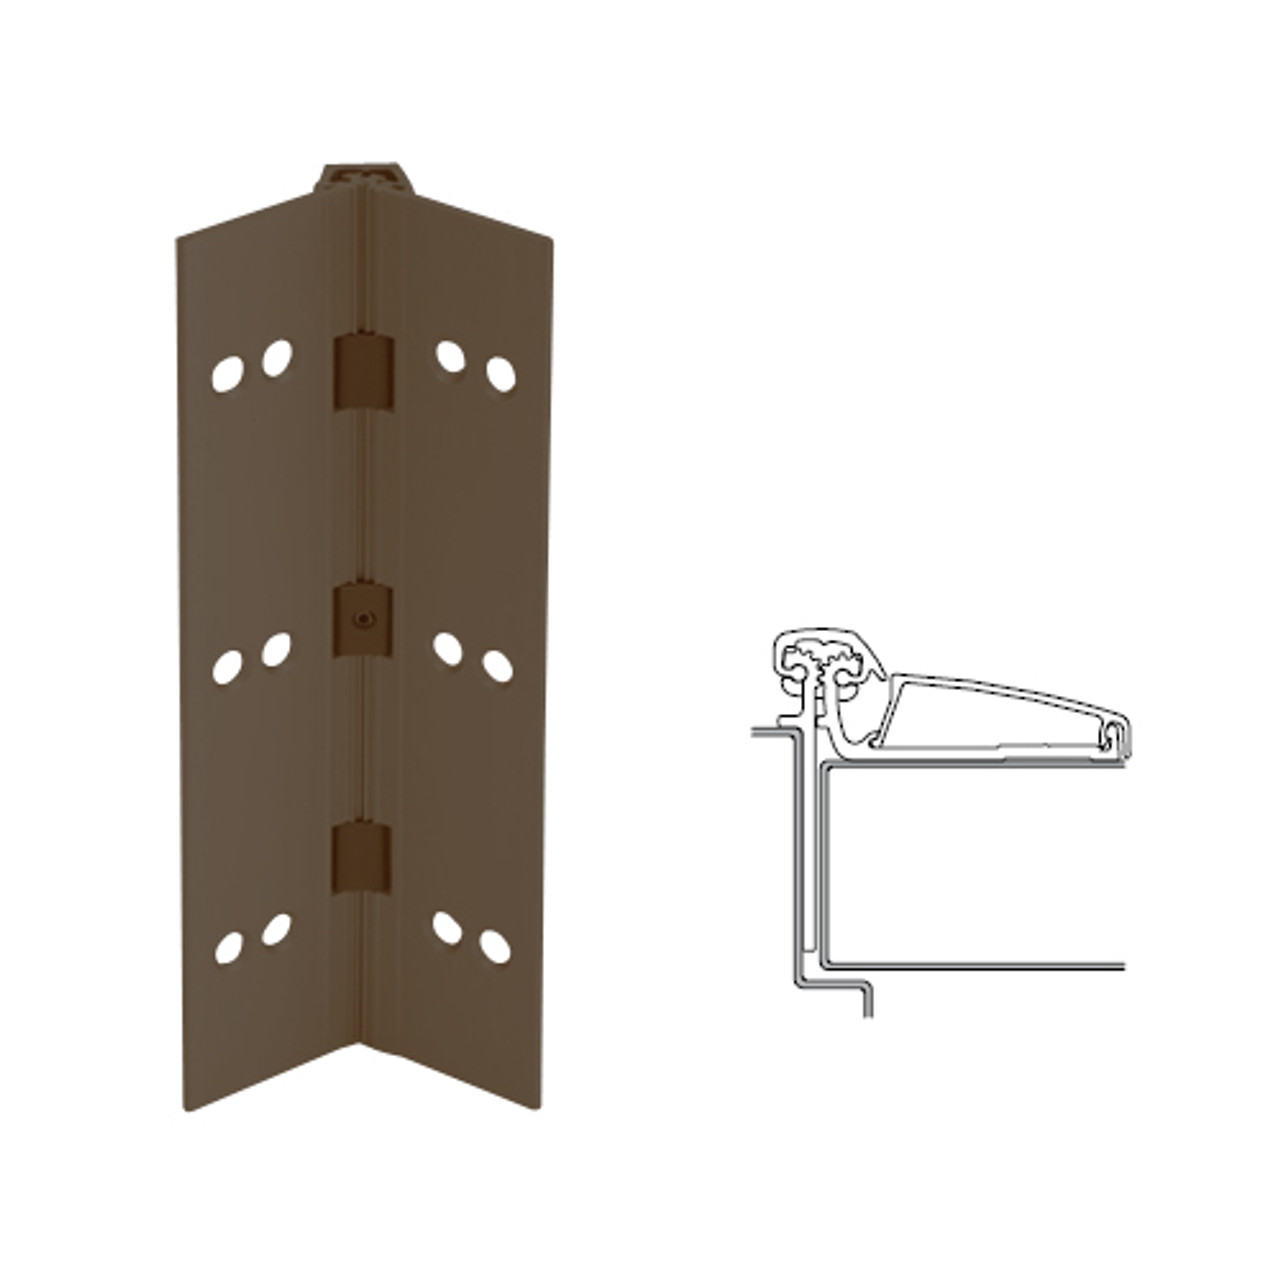 046XY-313AN-95-TF IVES Adjustable Half Surface Continuous Geared Hinges with Thread Forming Screws in Dark Bronze Anodized